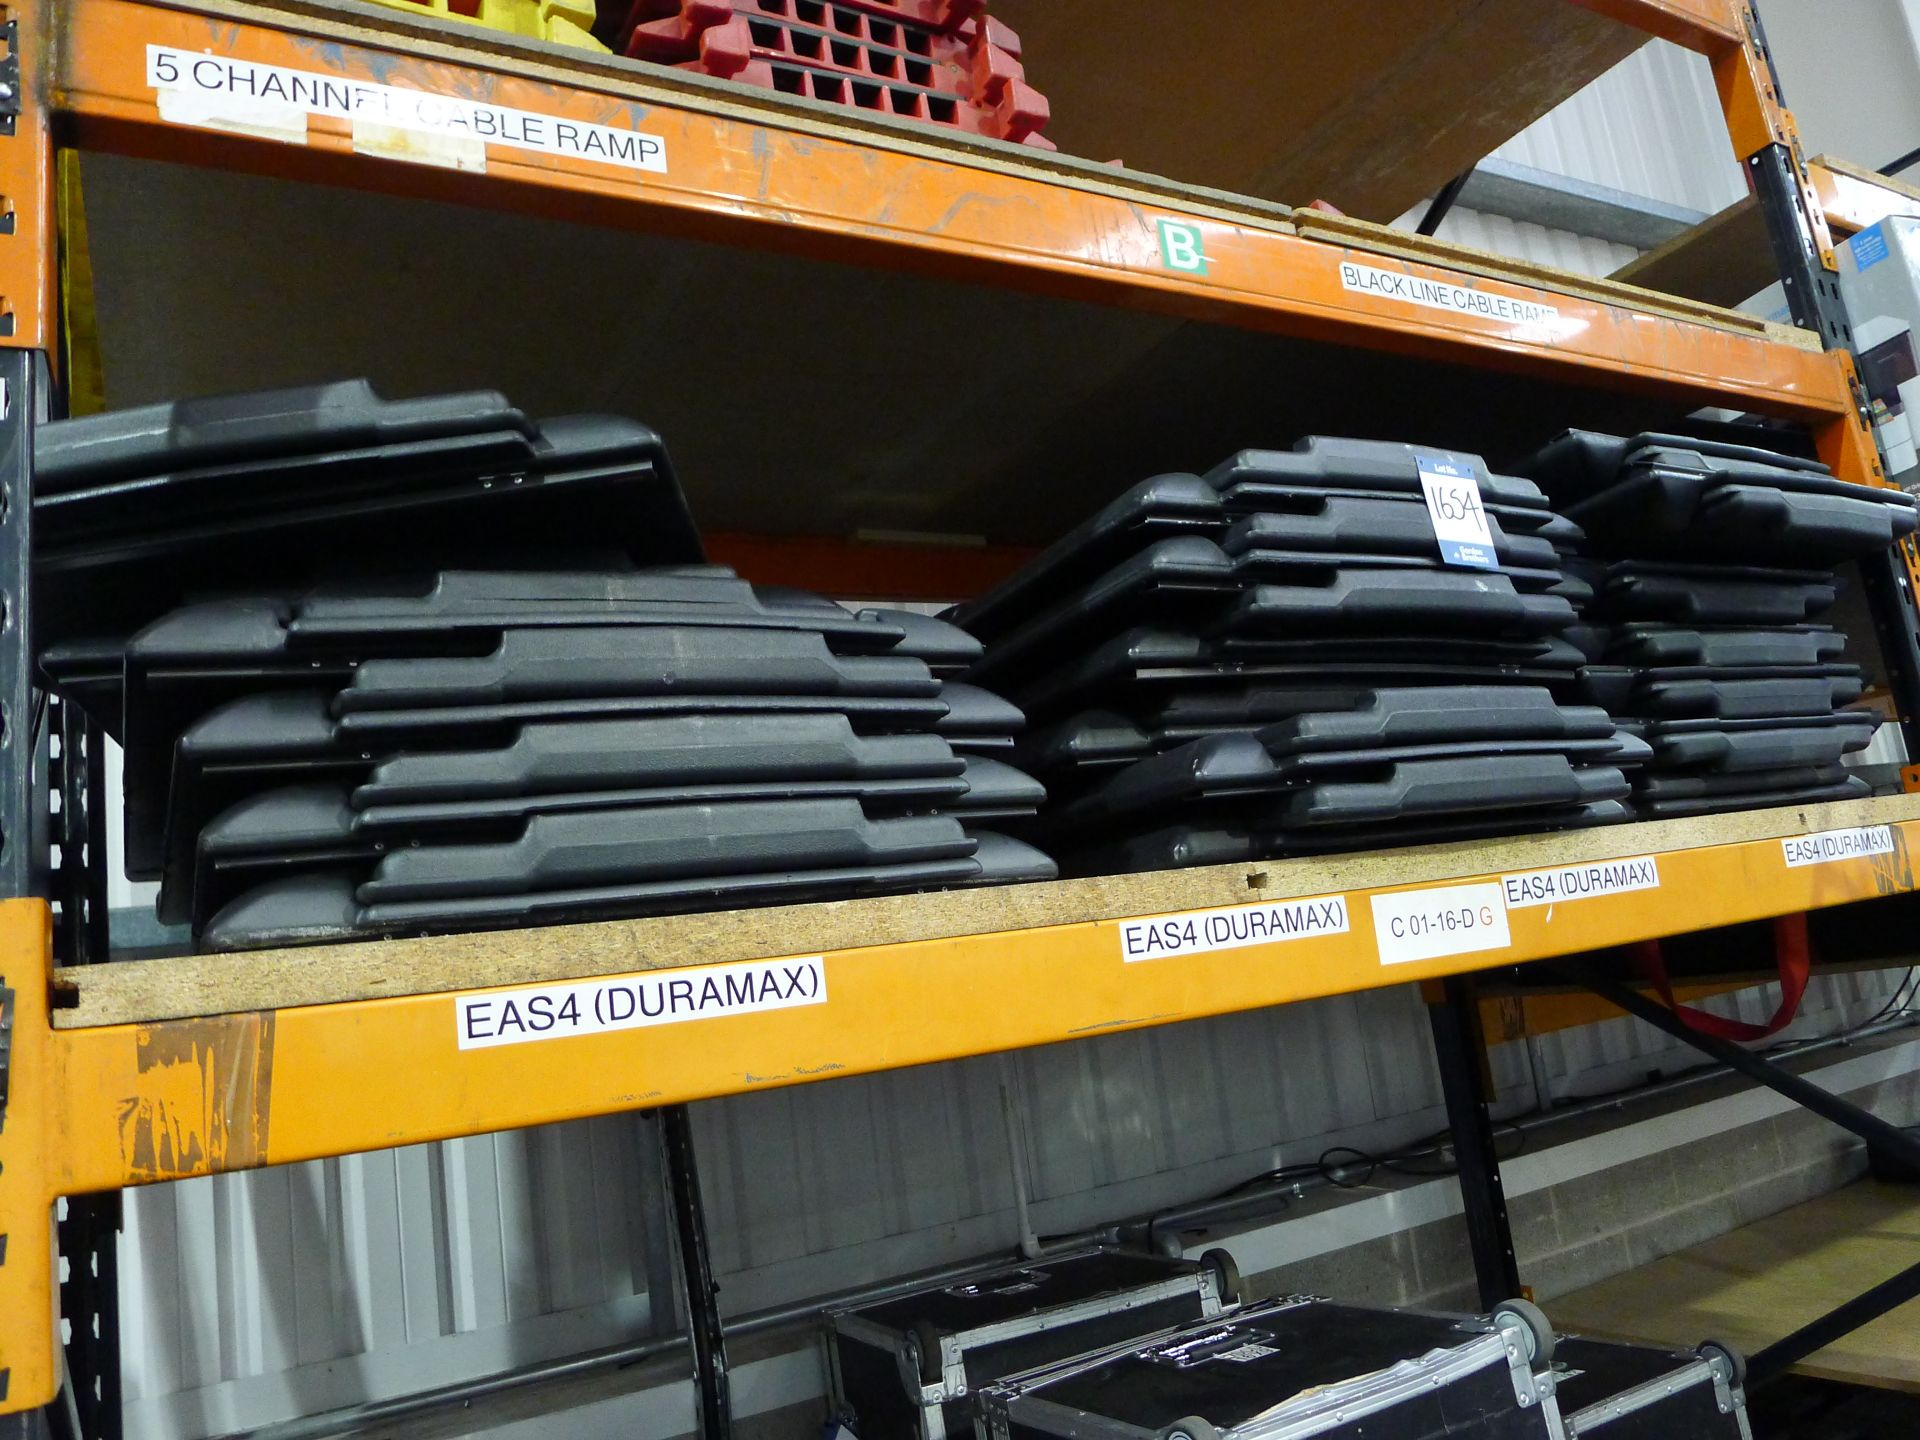 Lot 1654 - 19x Nobo Duramax Flipchart Easels with Carry Bags: